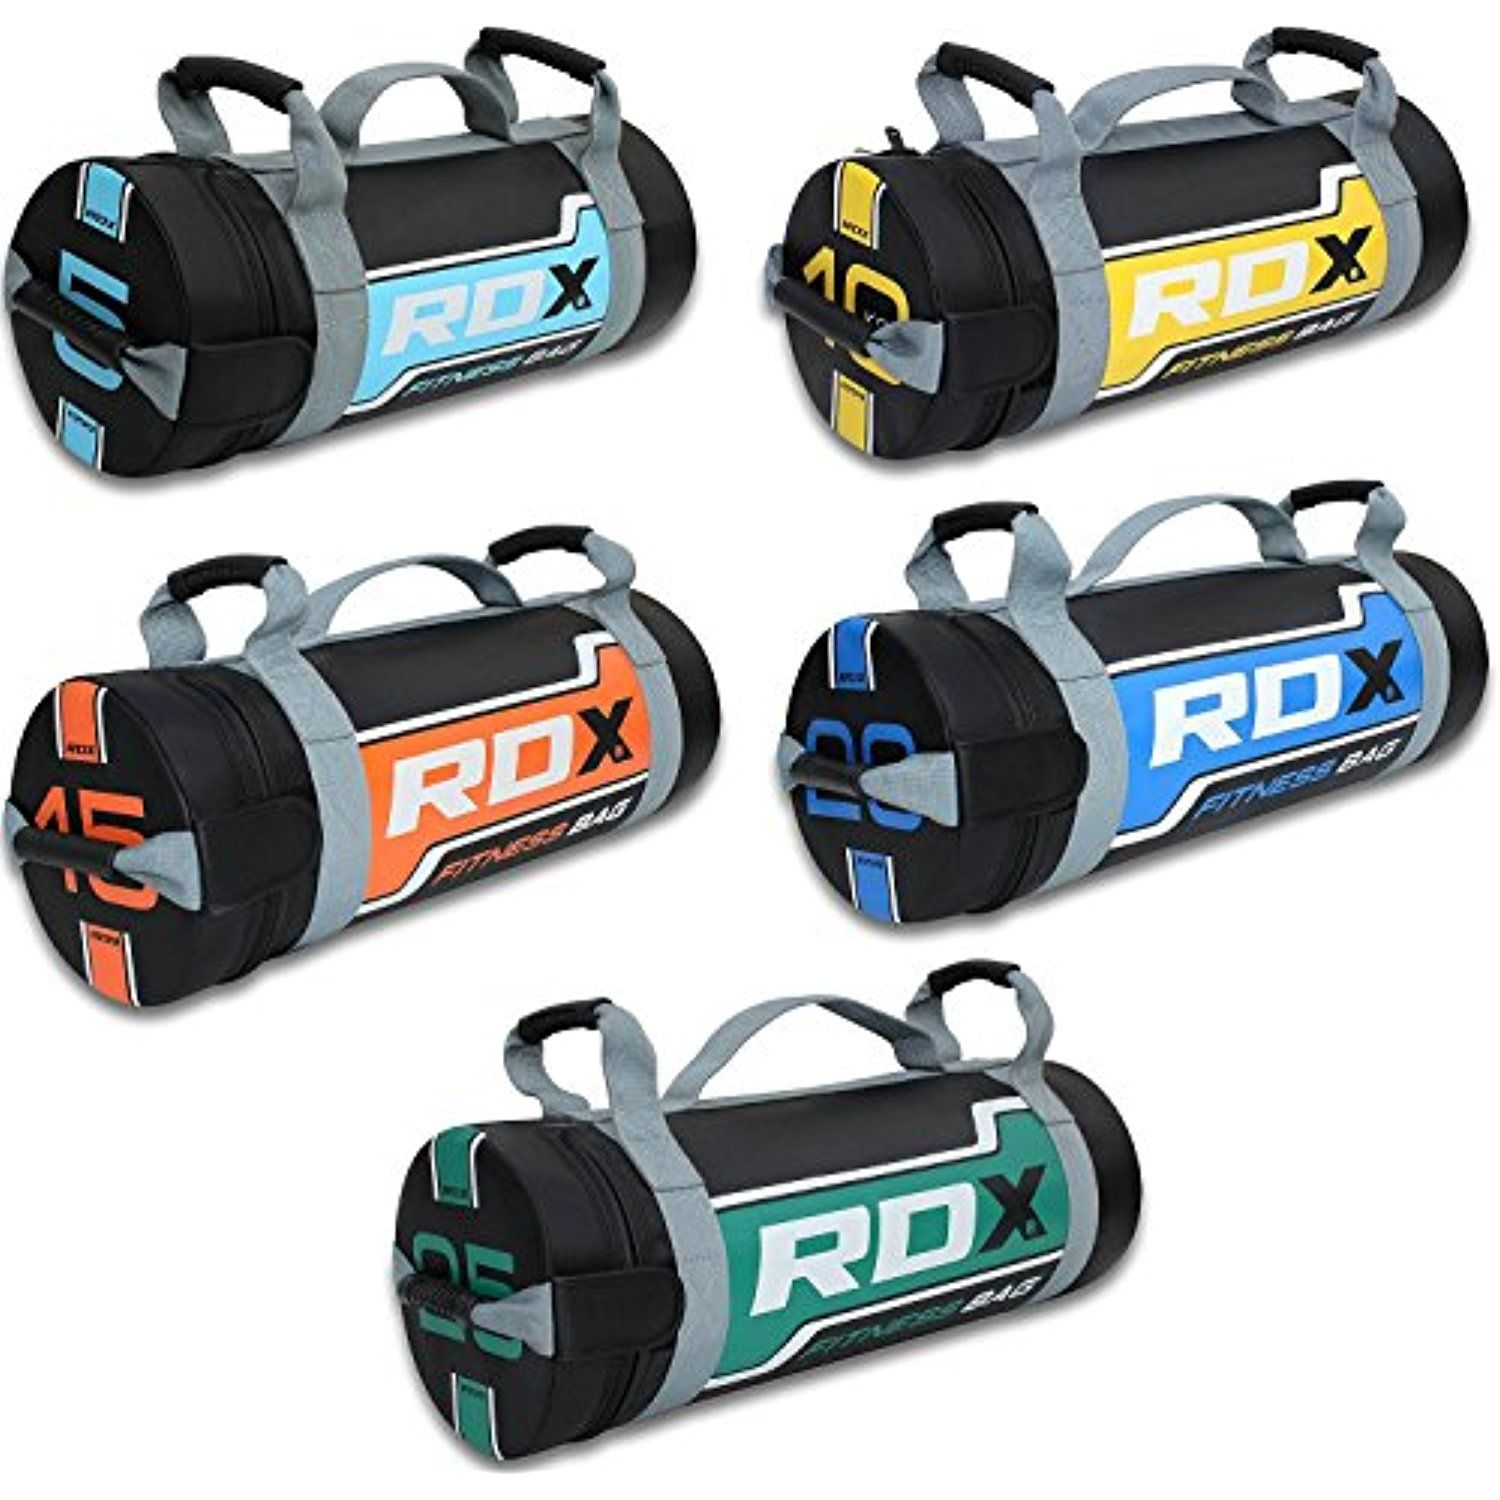 Exercise Weight Adjustable Fitness Powerbag for Weight Lifting Powerlifting and Functional Workout RDX Sandbag Weight Training Power Bag with Handles /& Zipper Running